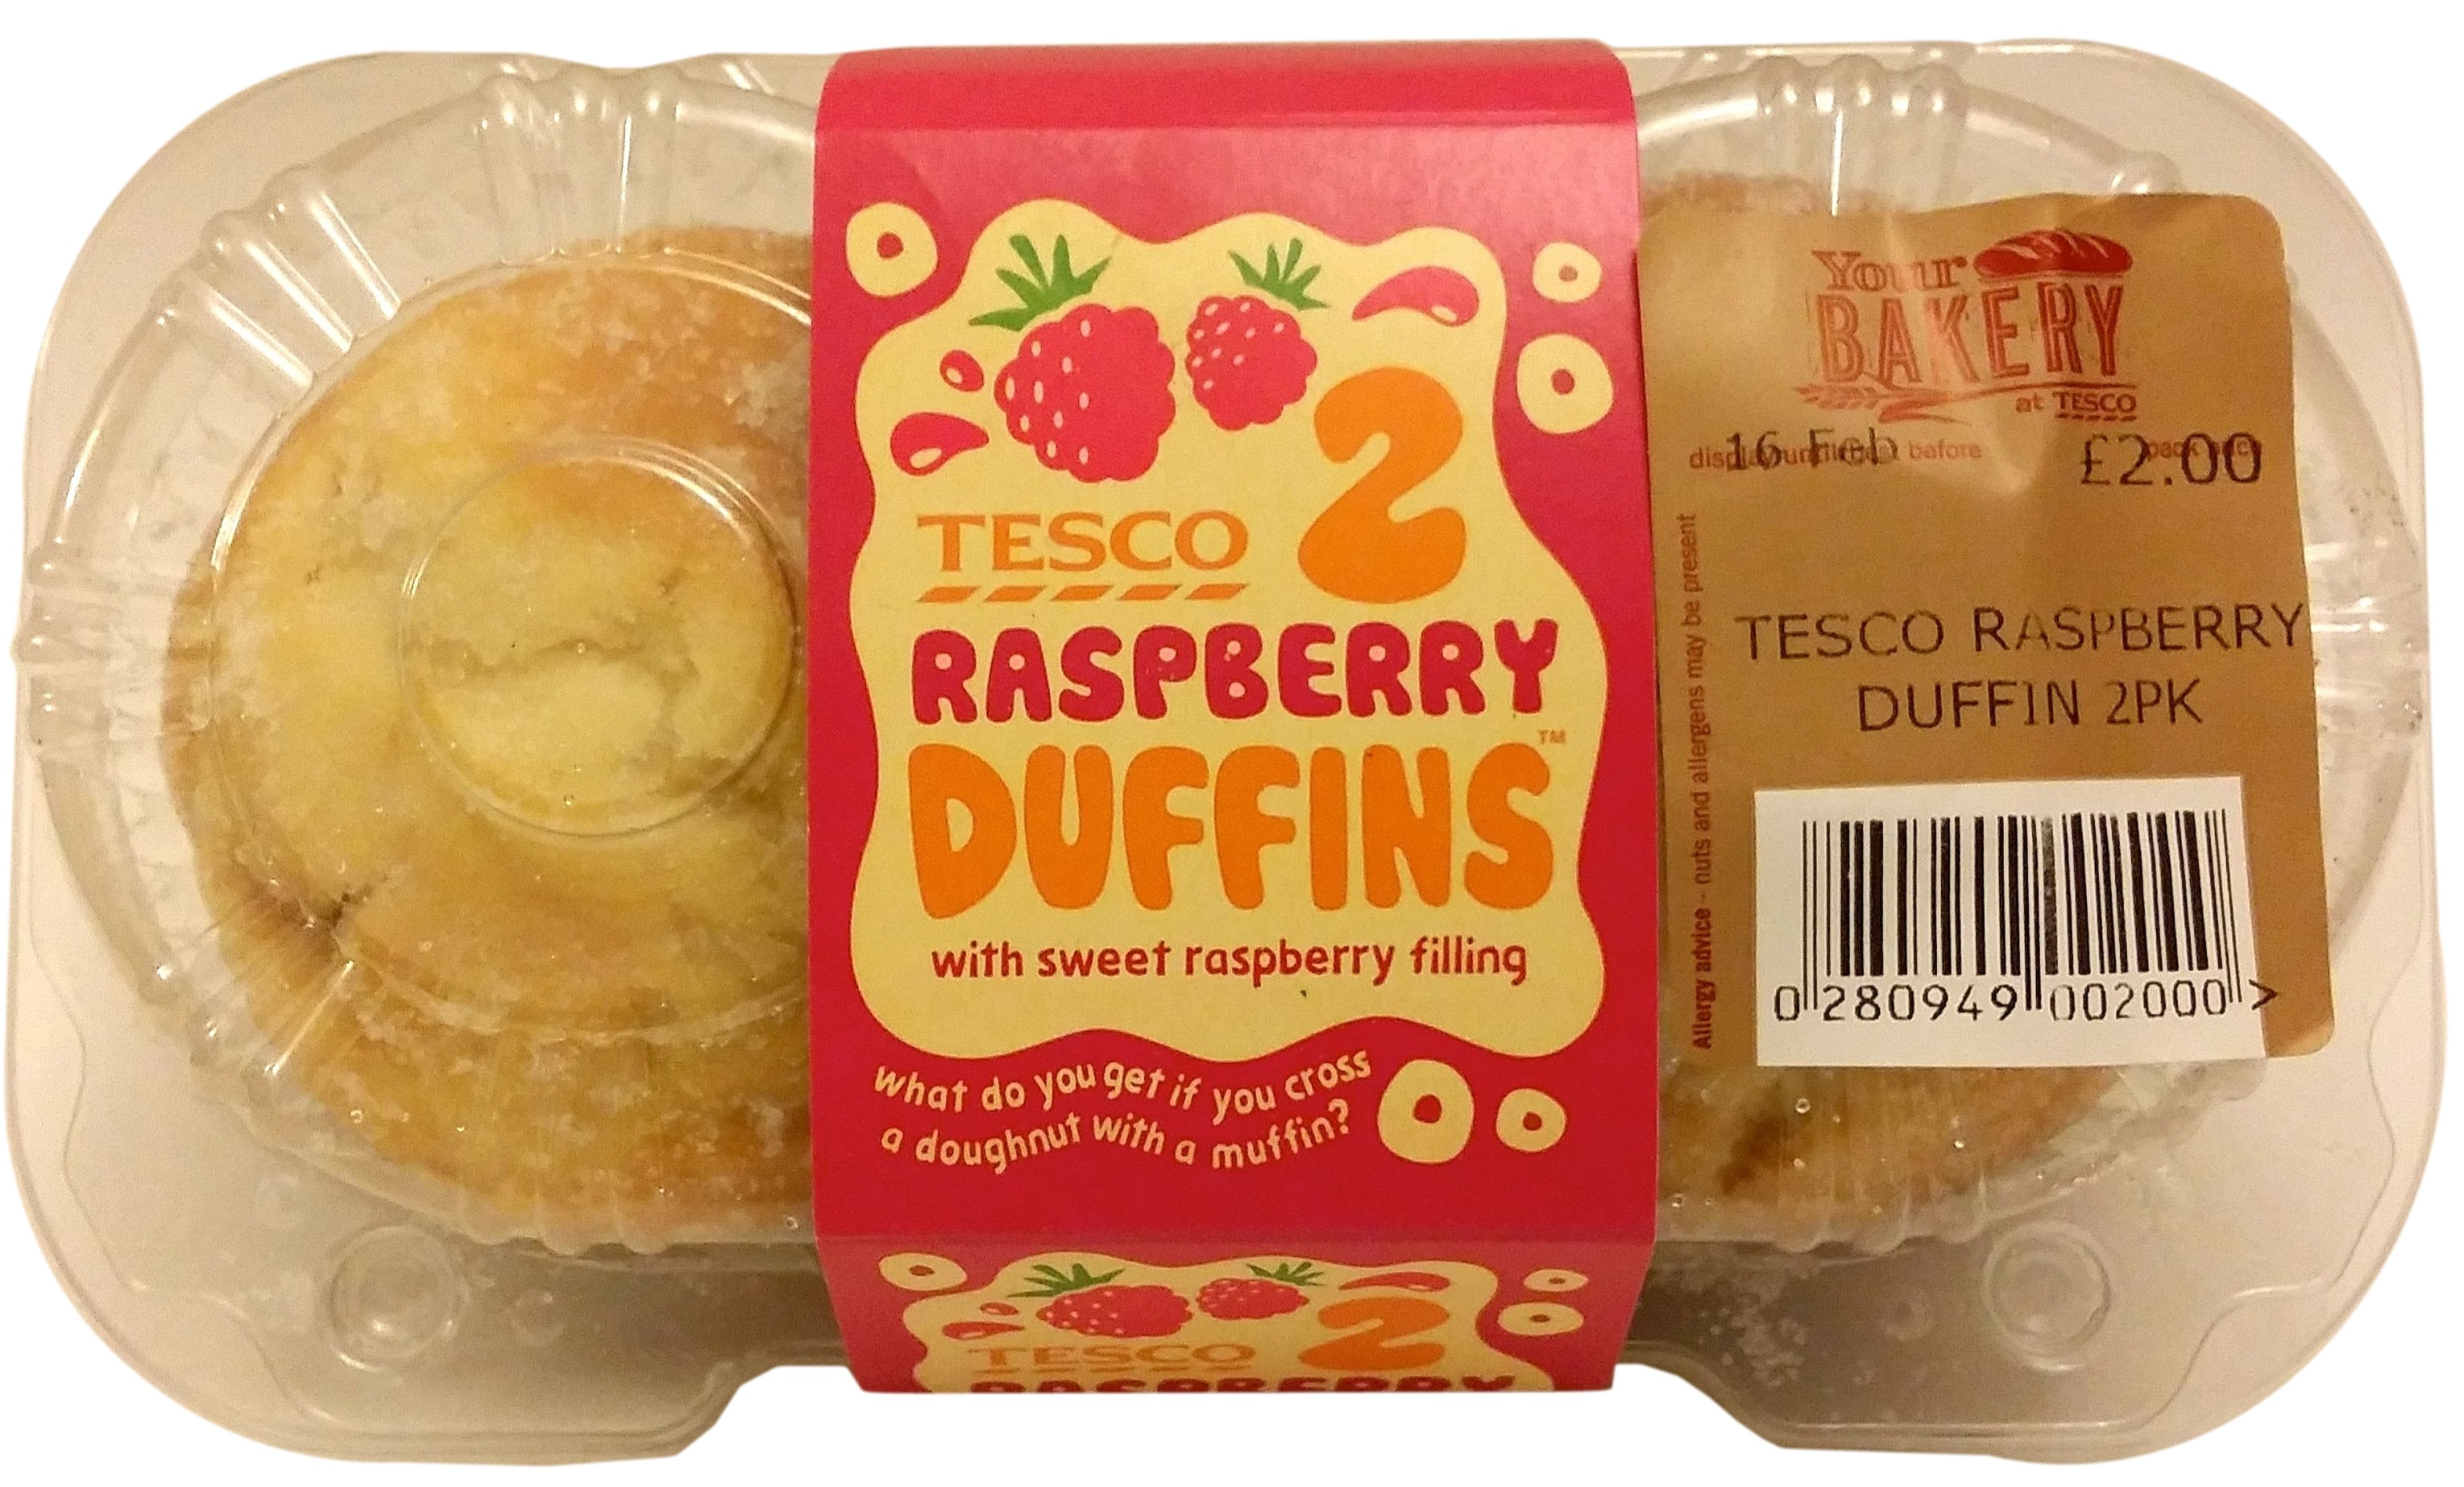 Tesco's raspberry duffins